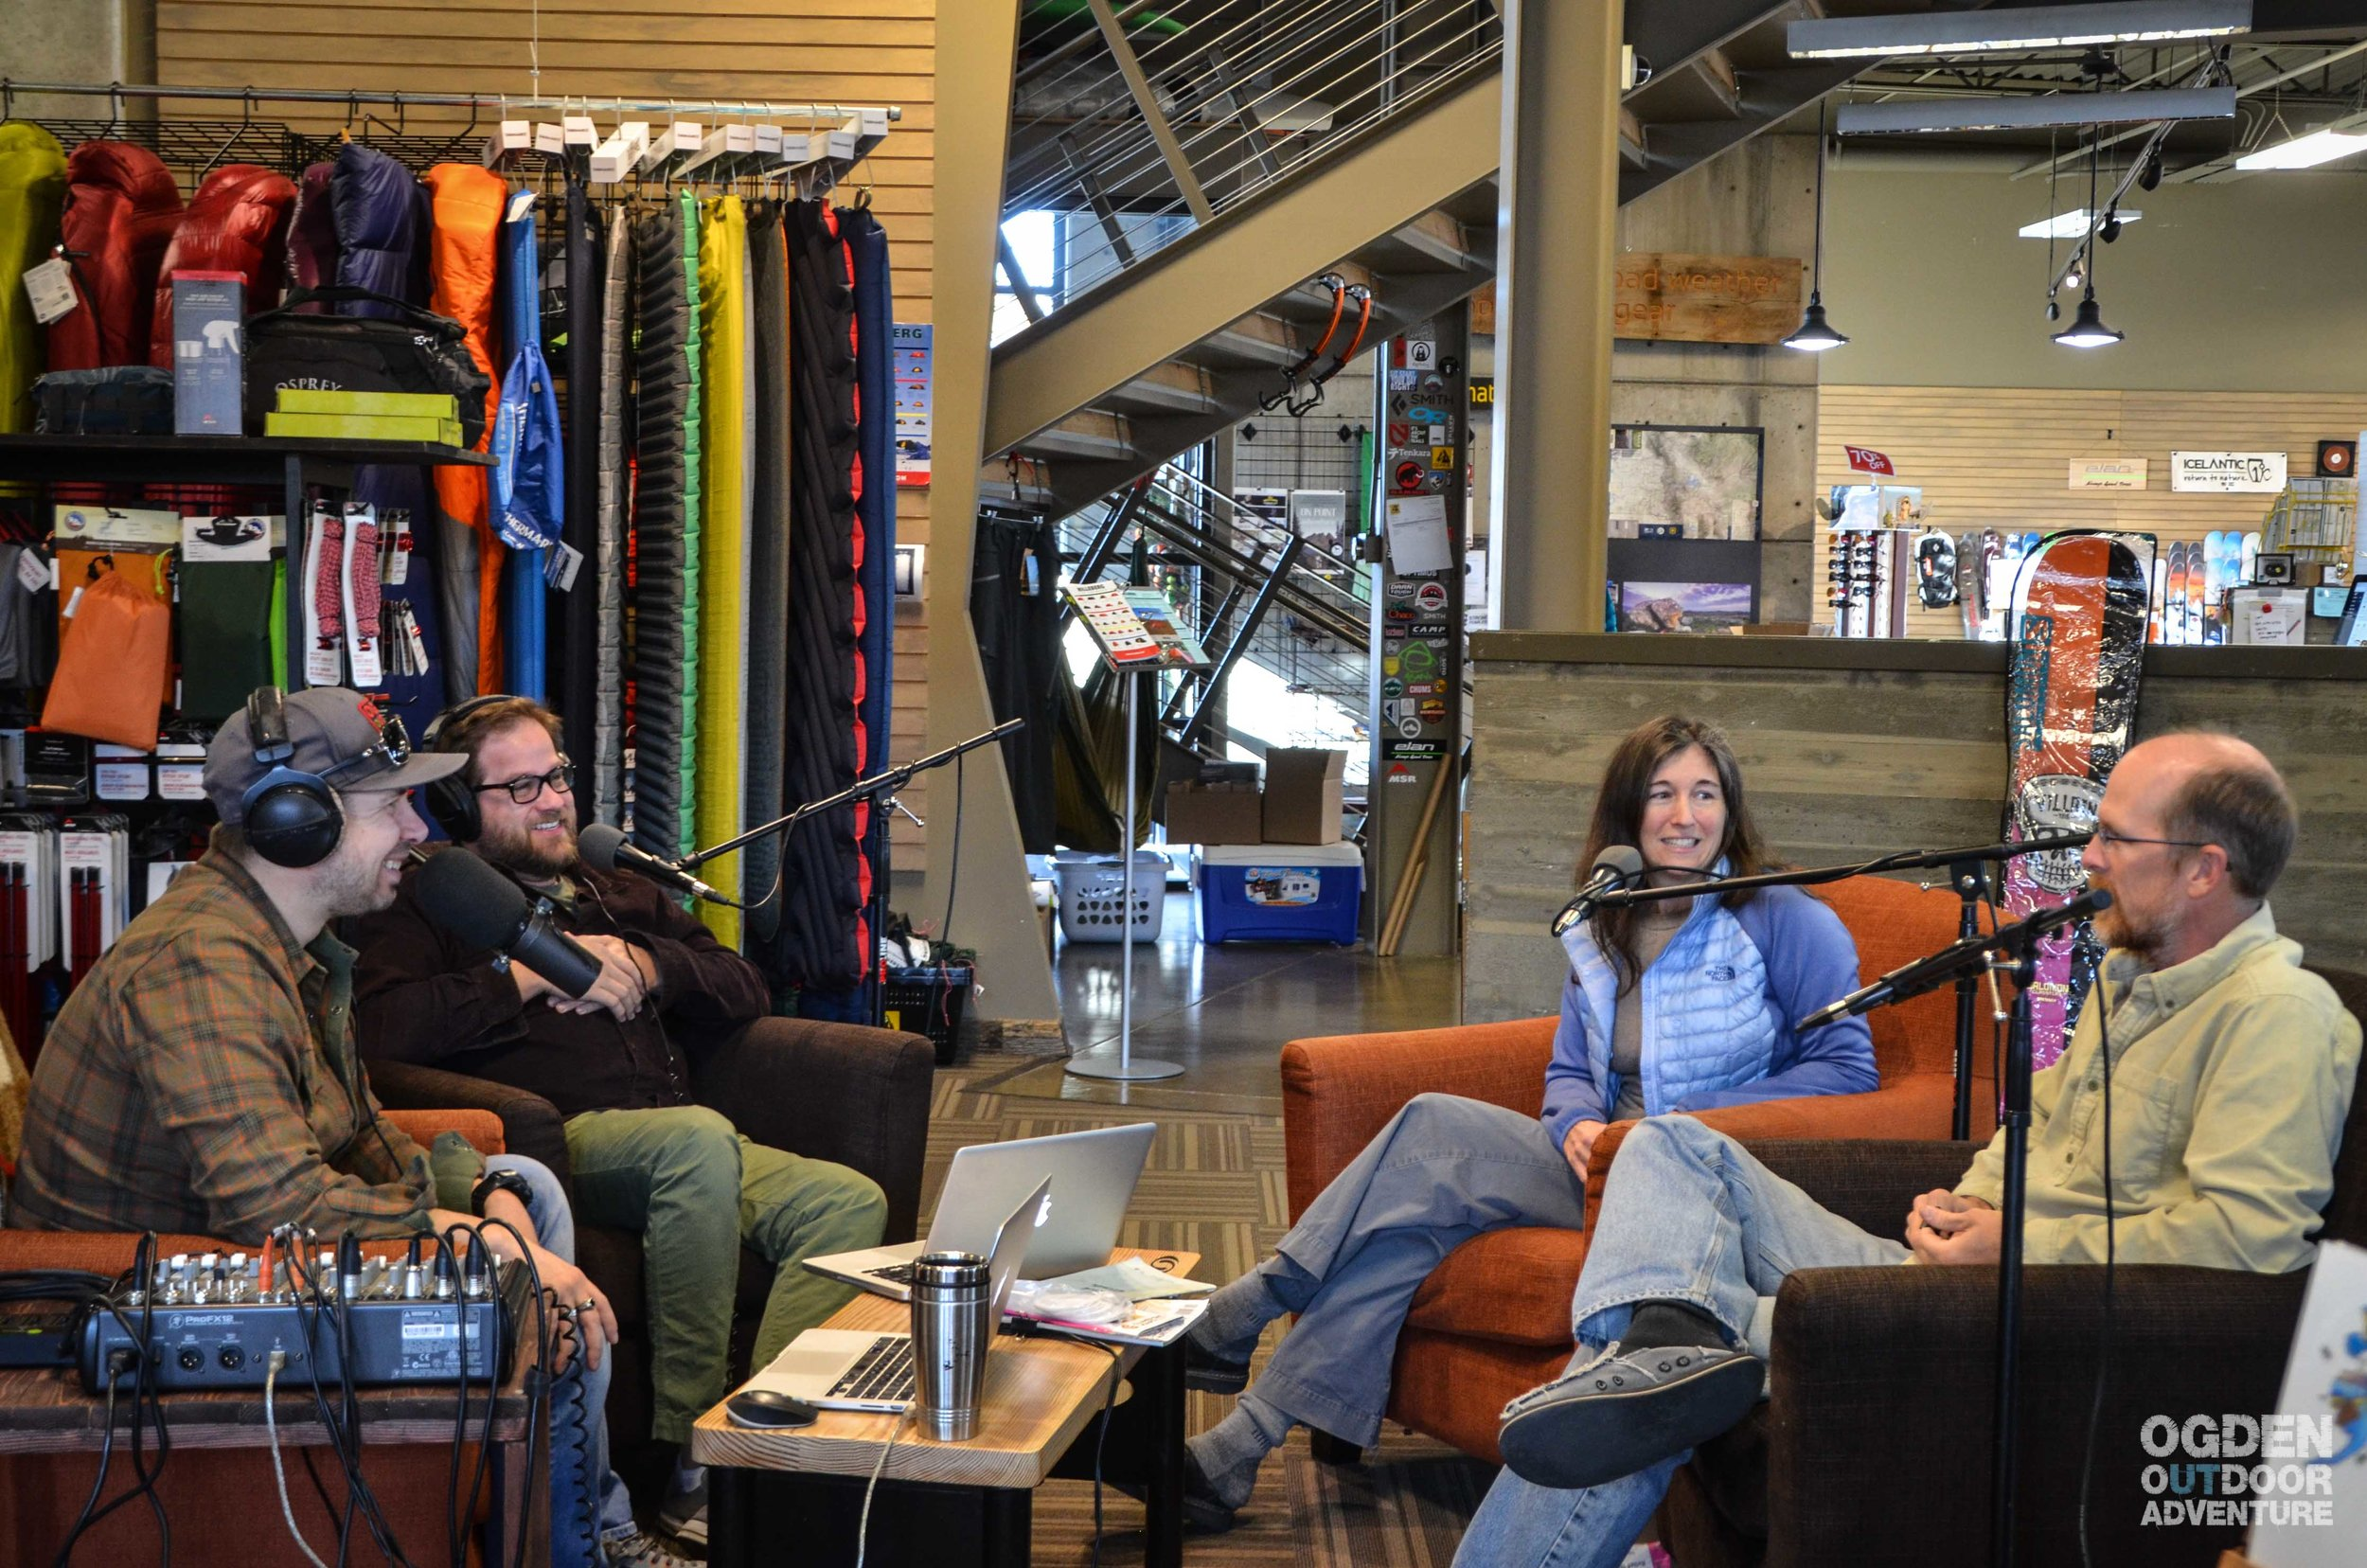 Podcasting at GEAR:30 with guests Rick Momsen & Stefani Dawn of Climb-On Maps